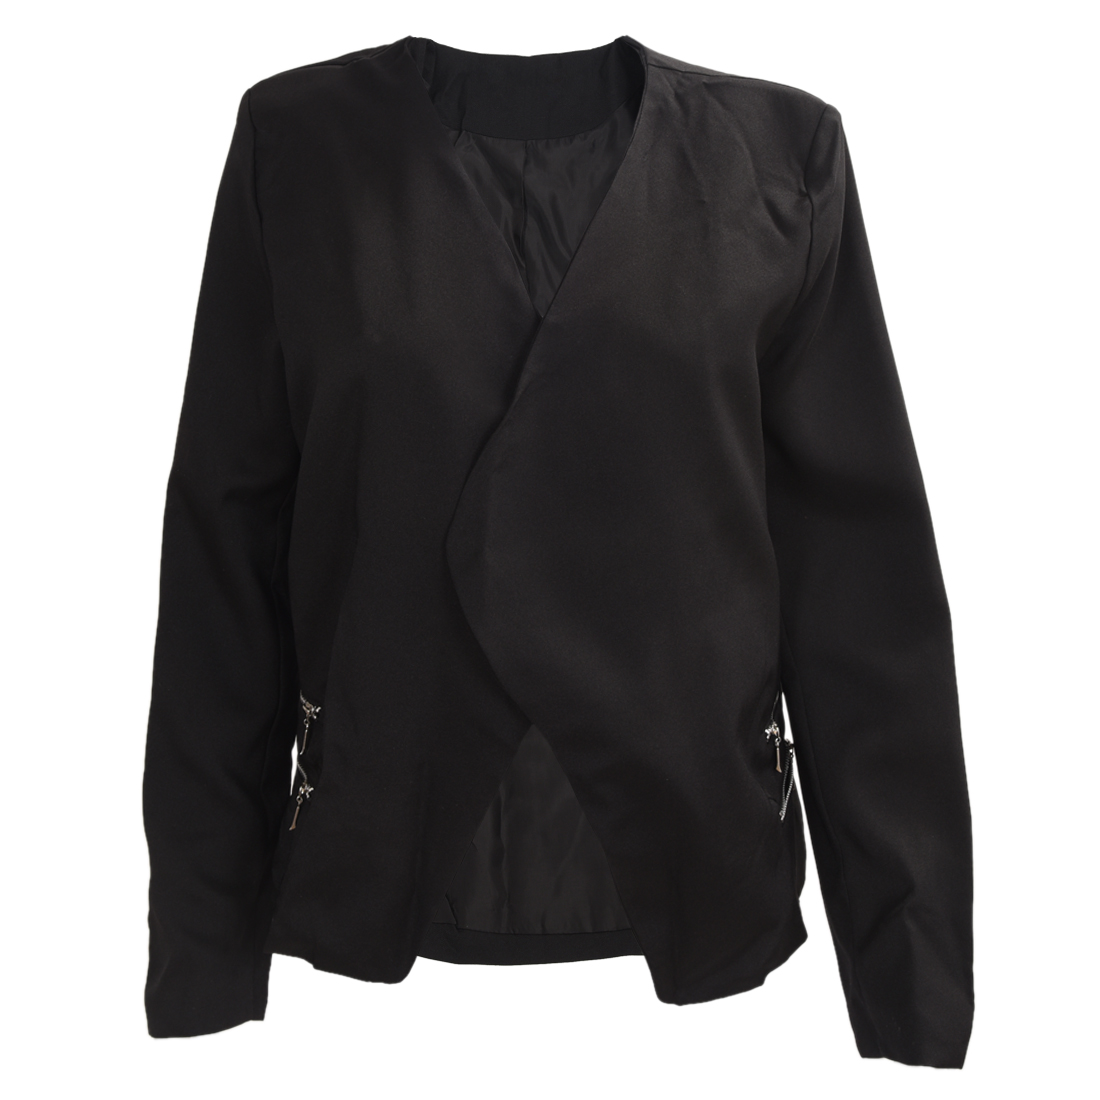 Compare Prices on Fitted Black Blazer Women- Online Shopping/Buy ...